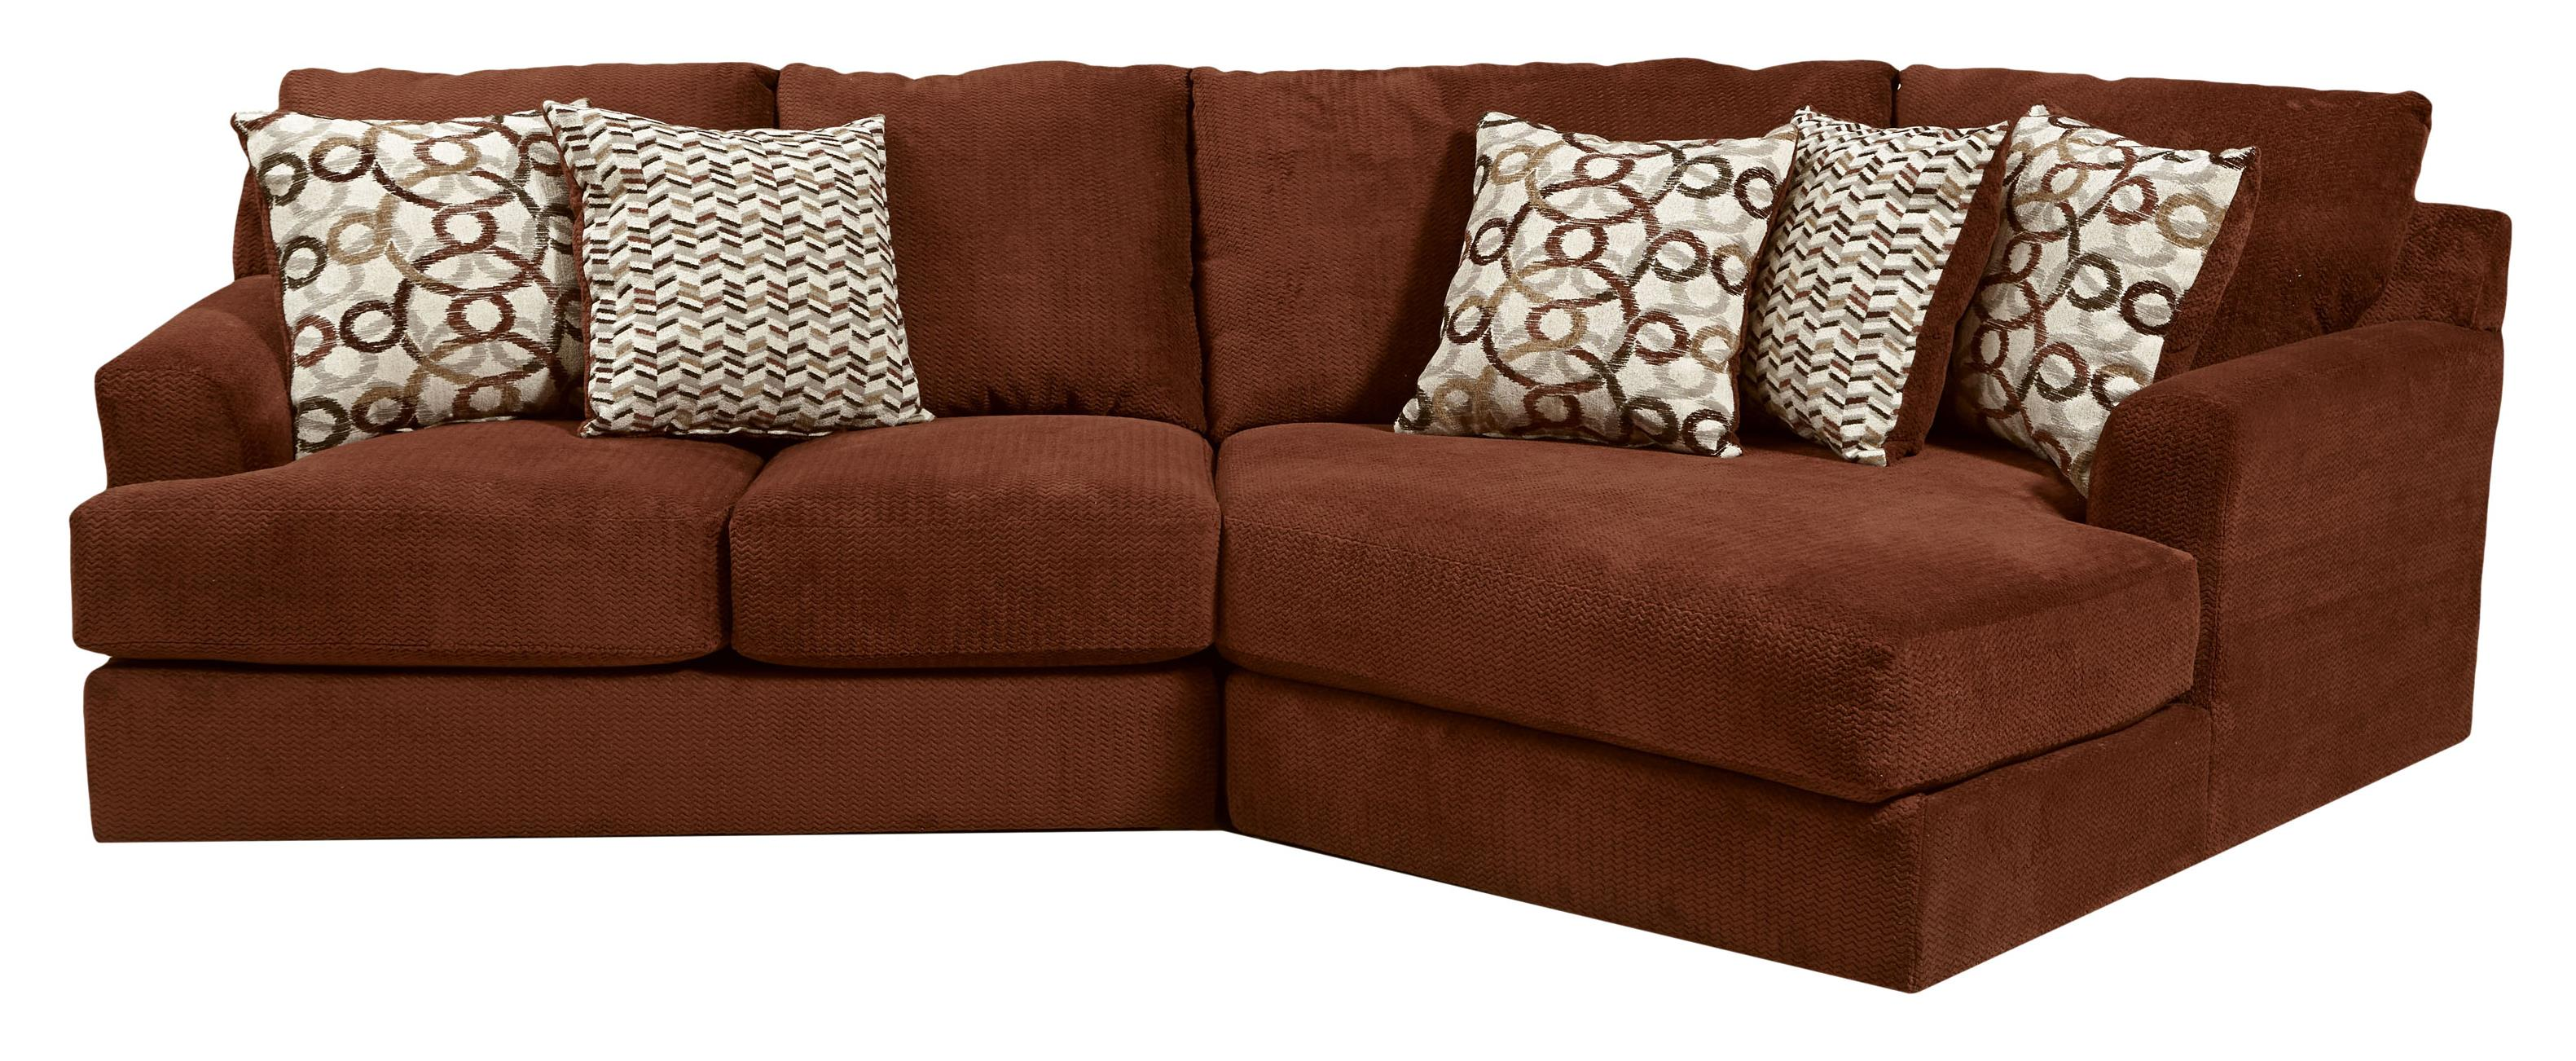 jackson furniture sectional sofas ultrasuede sofa uk small three seat by